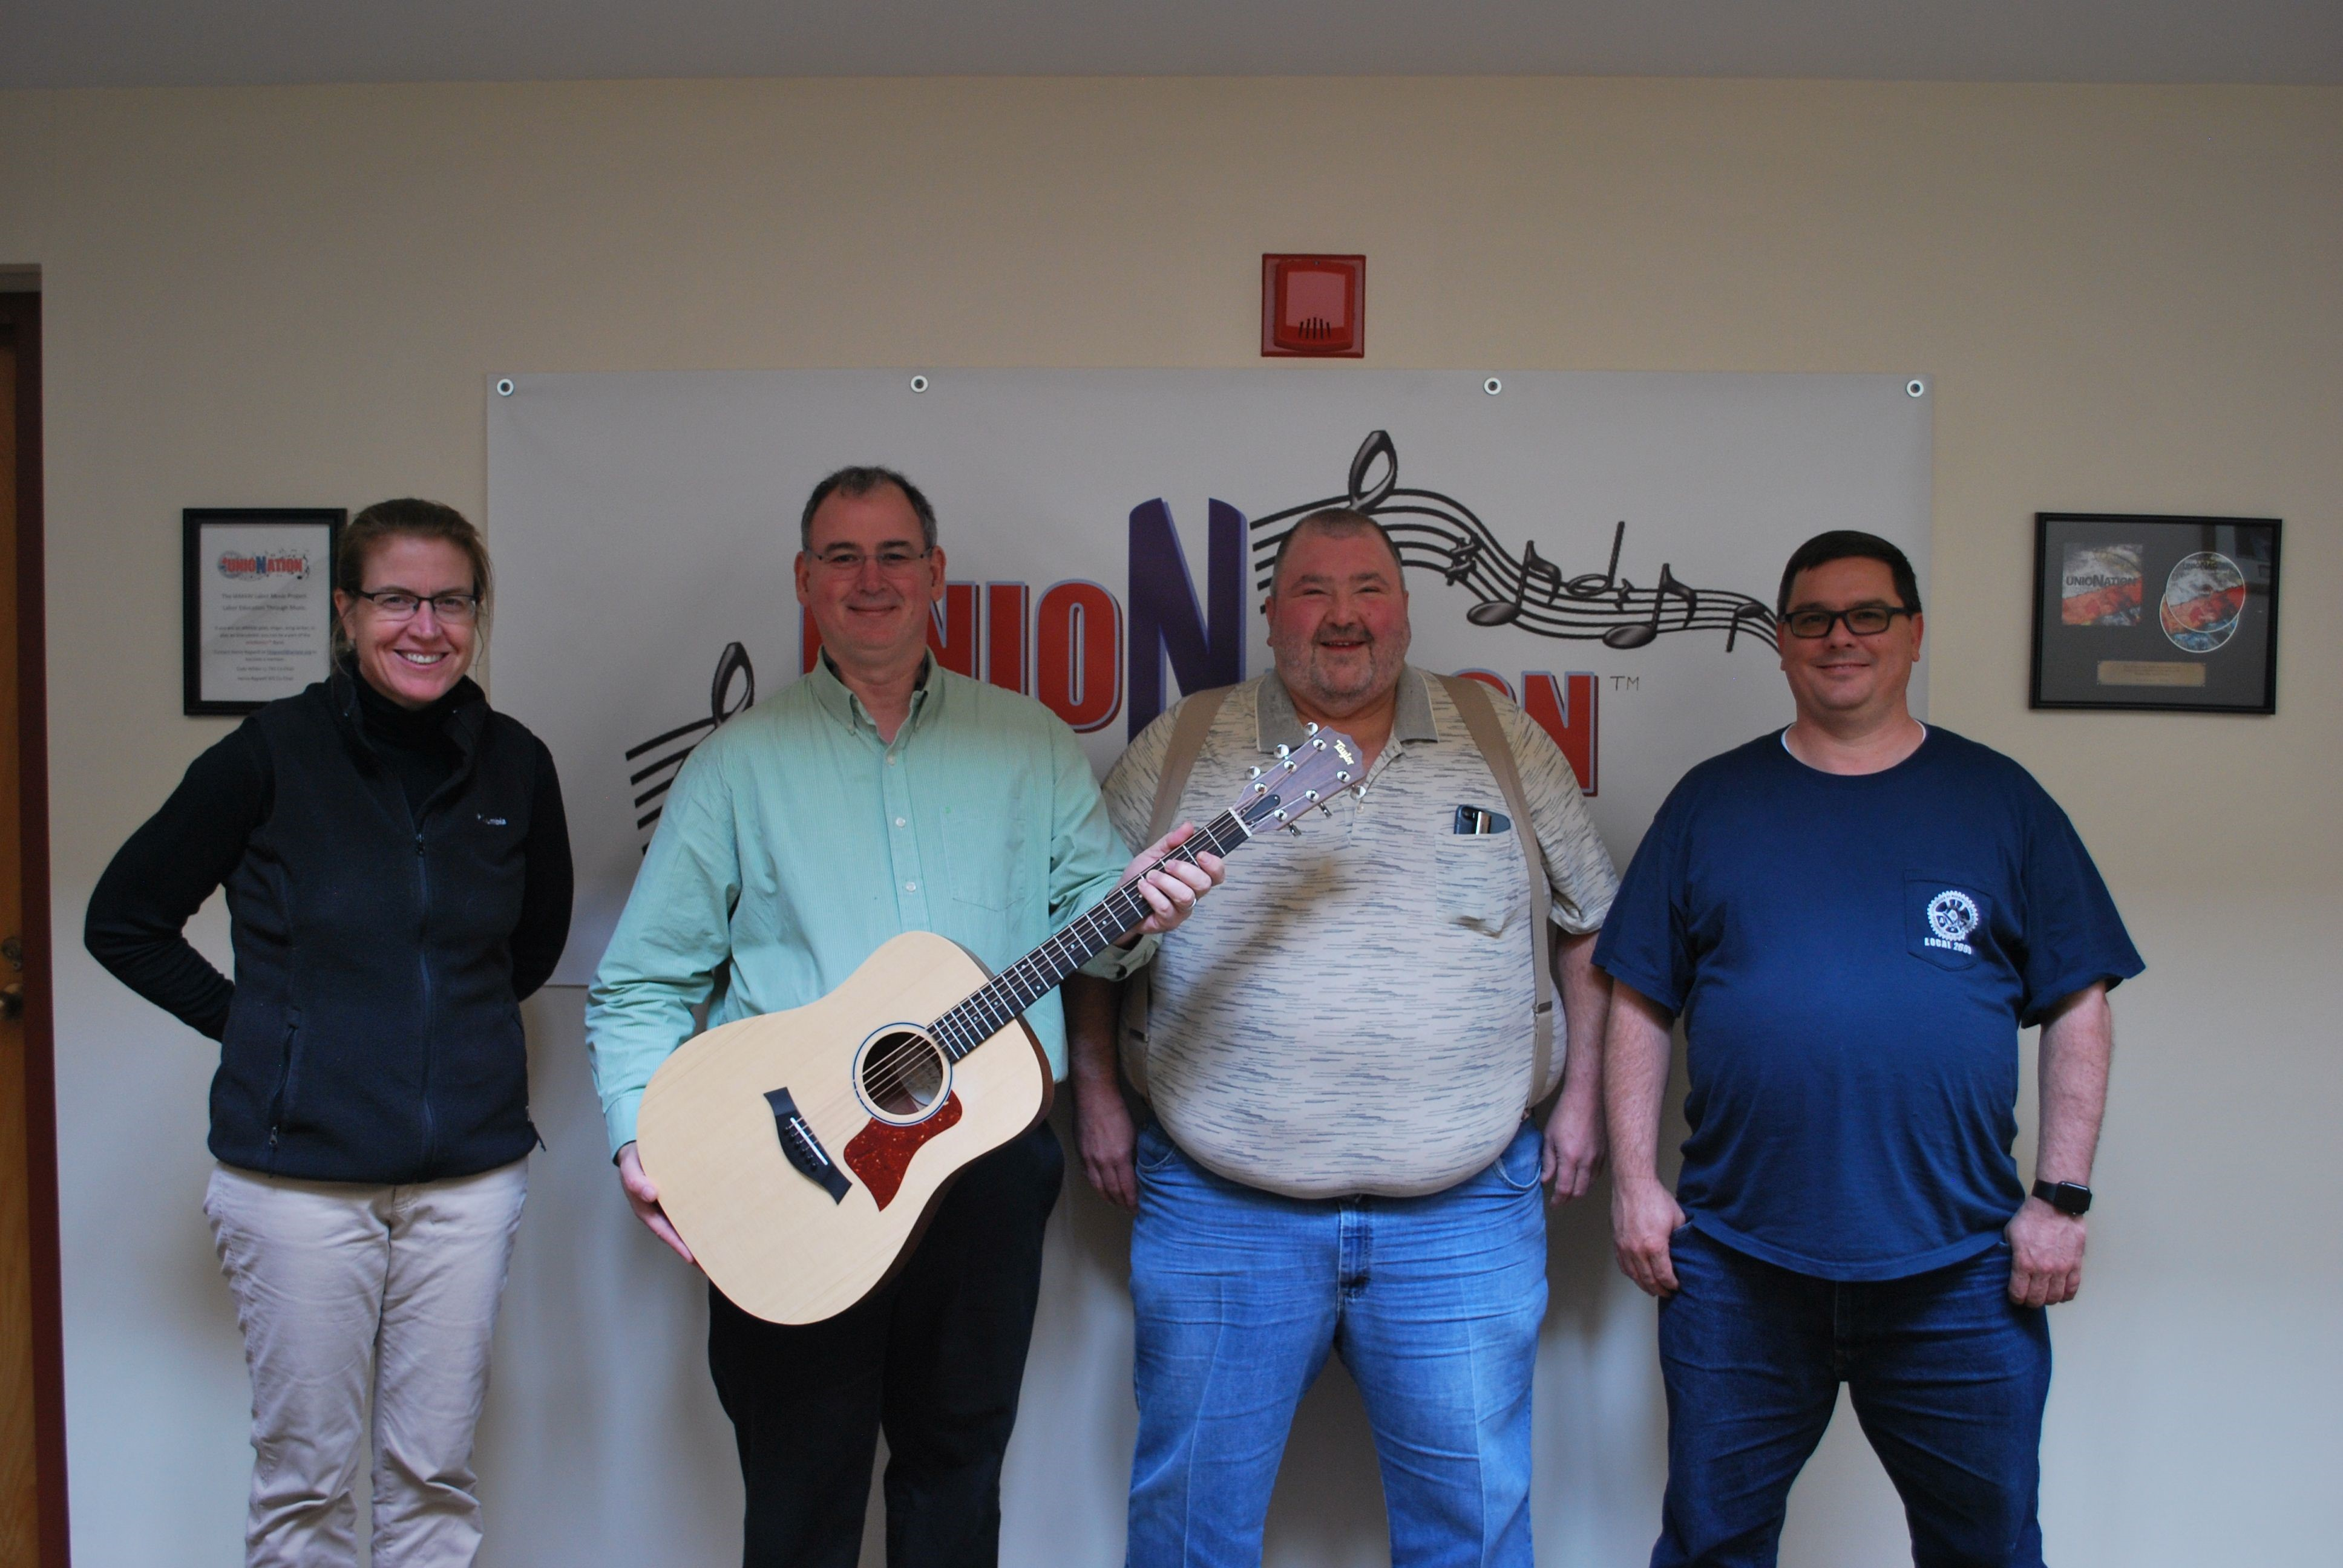 The Gift of a Guitar Bringing Members Together at Winpisinger Center